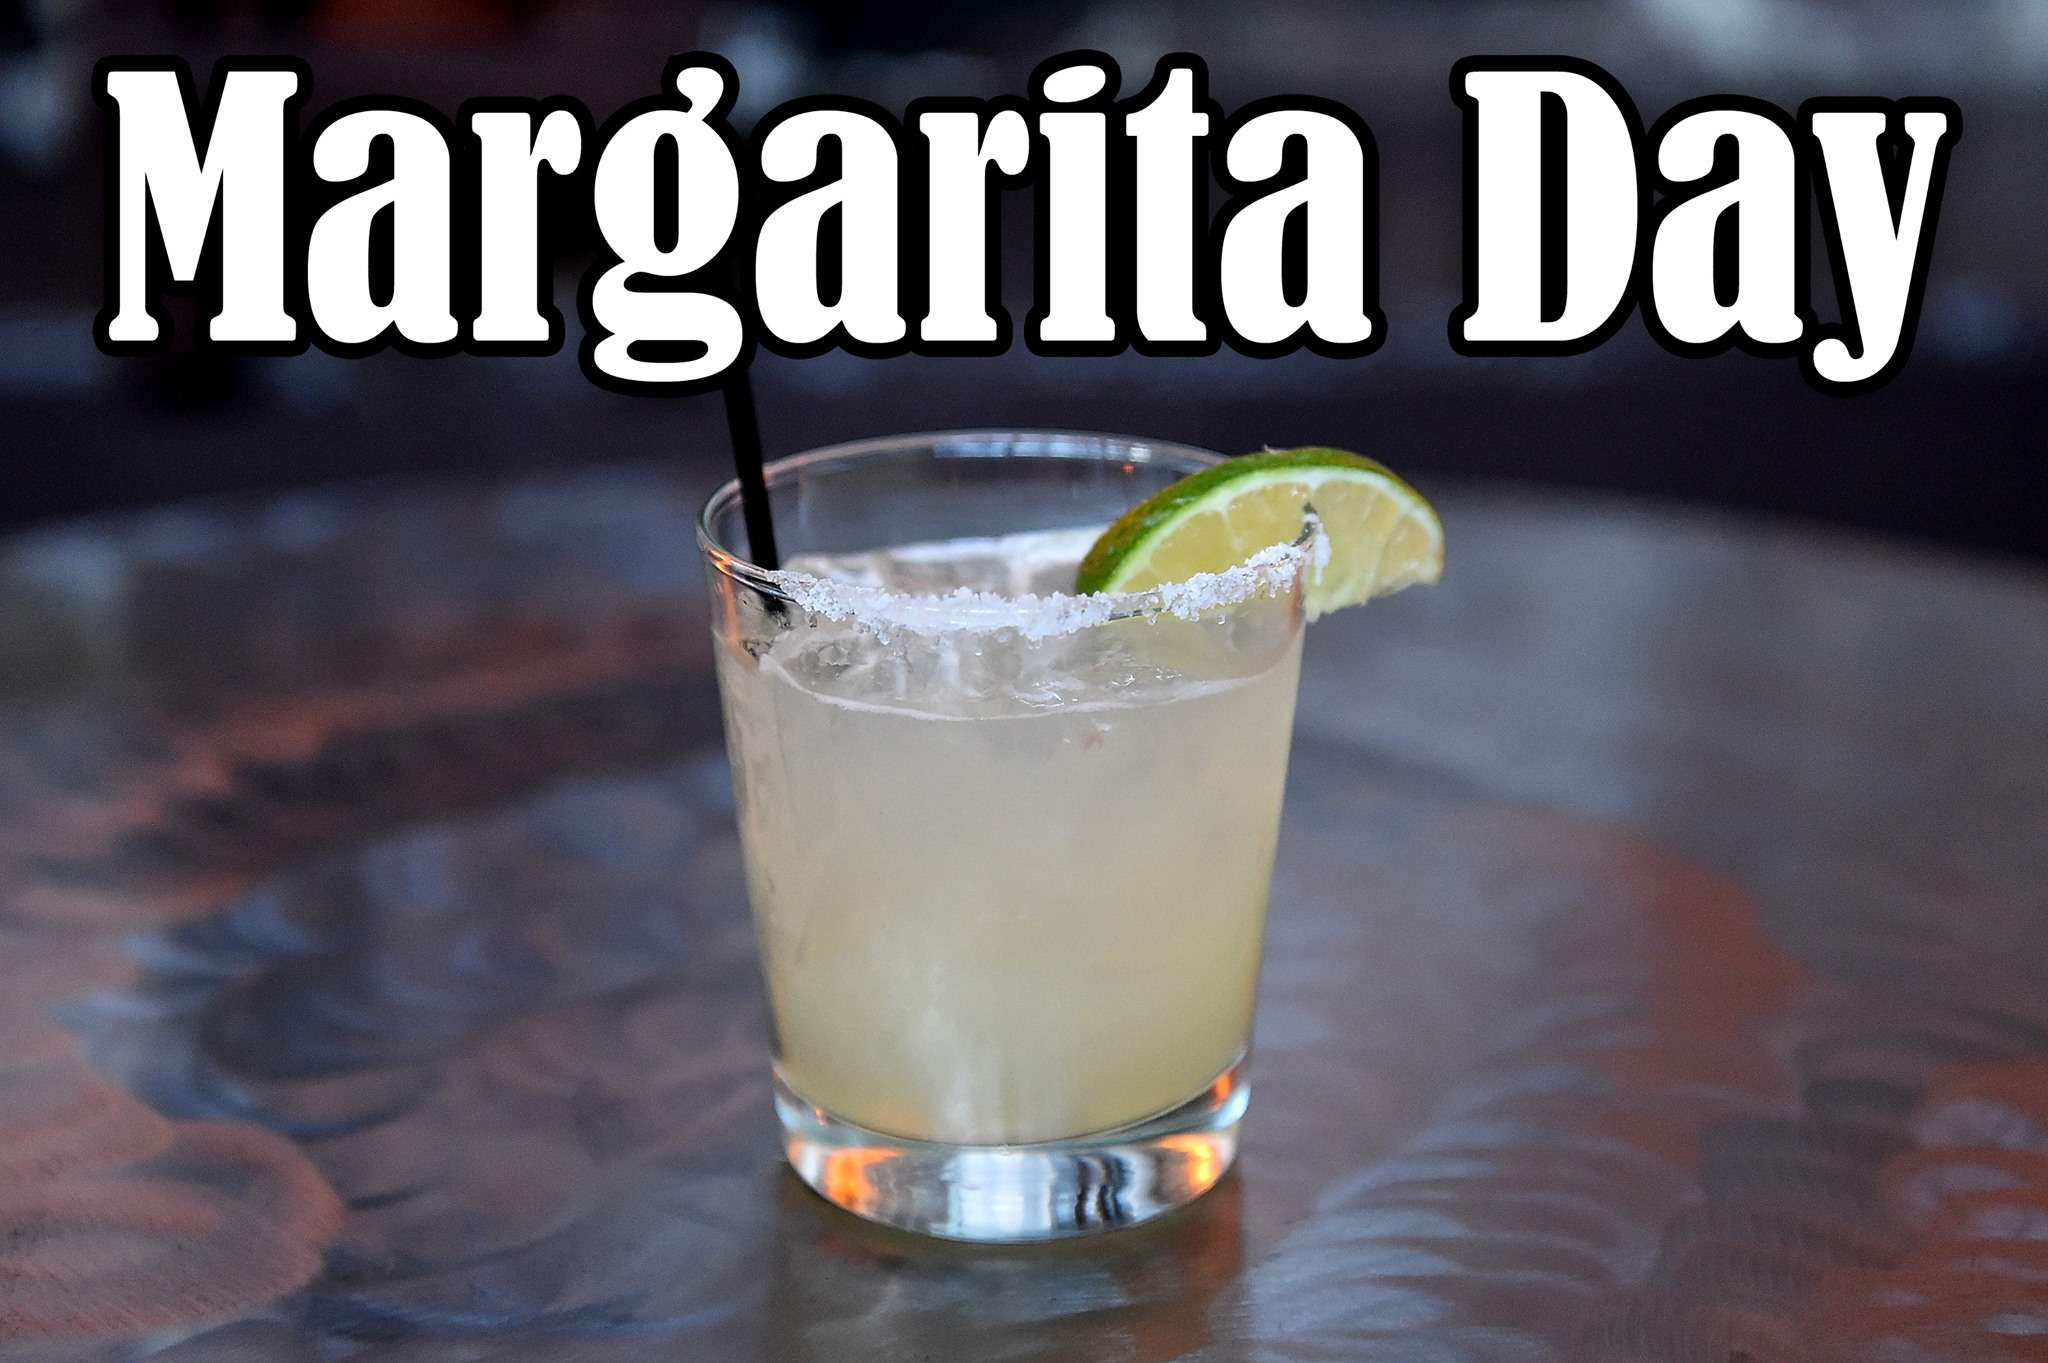 National Margarita Day Wishes Beautiful Image